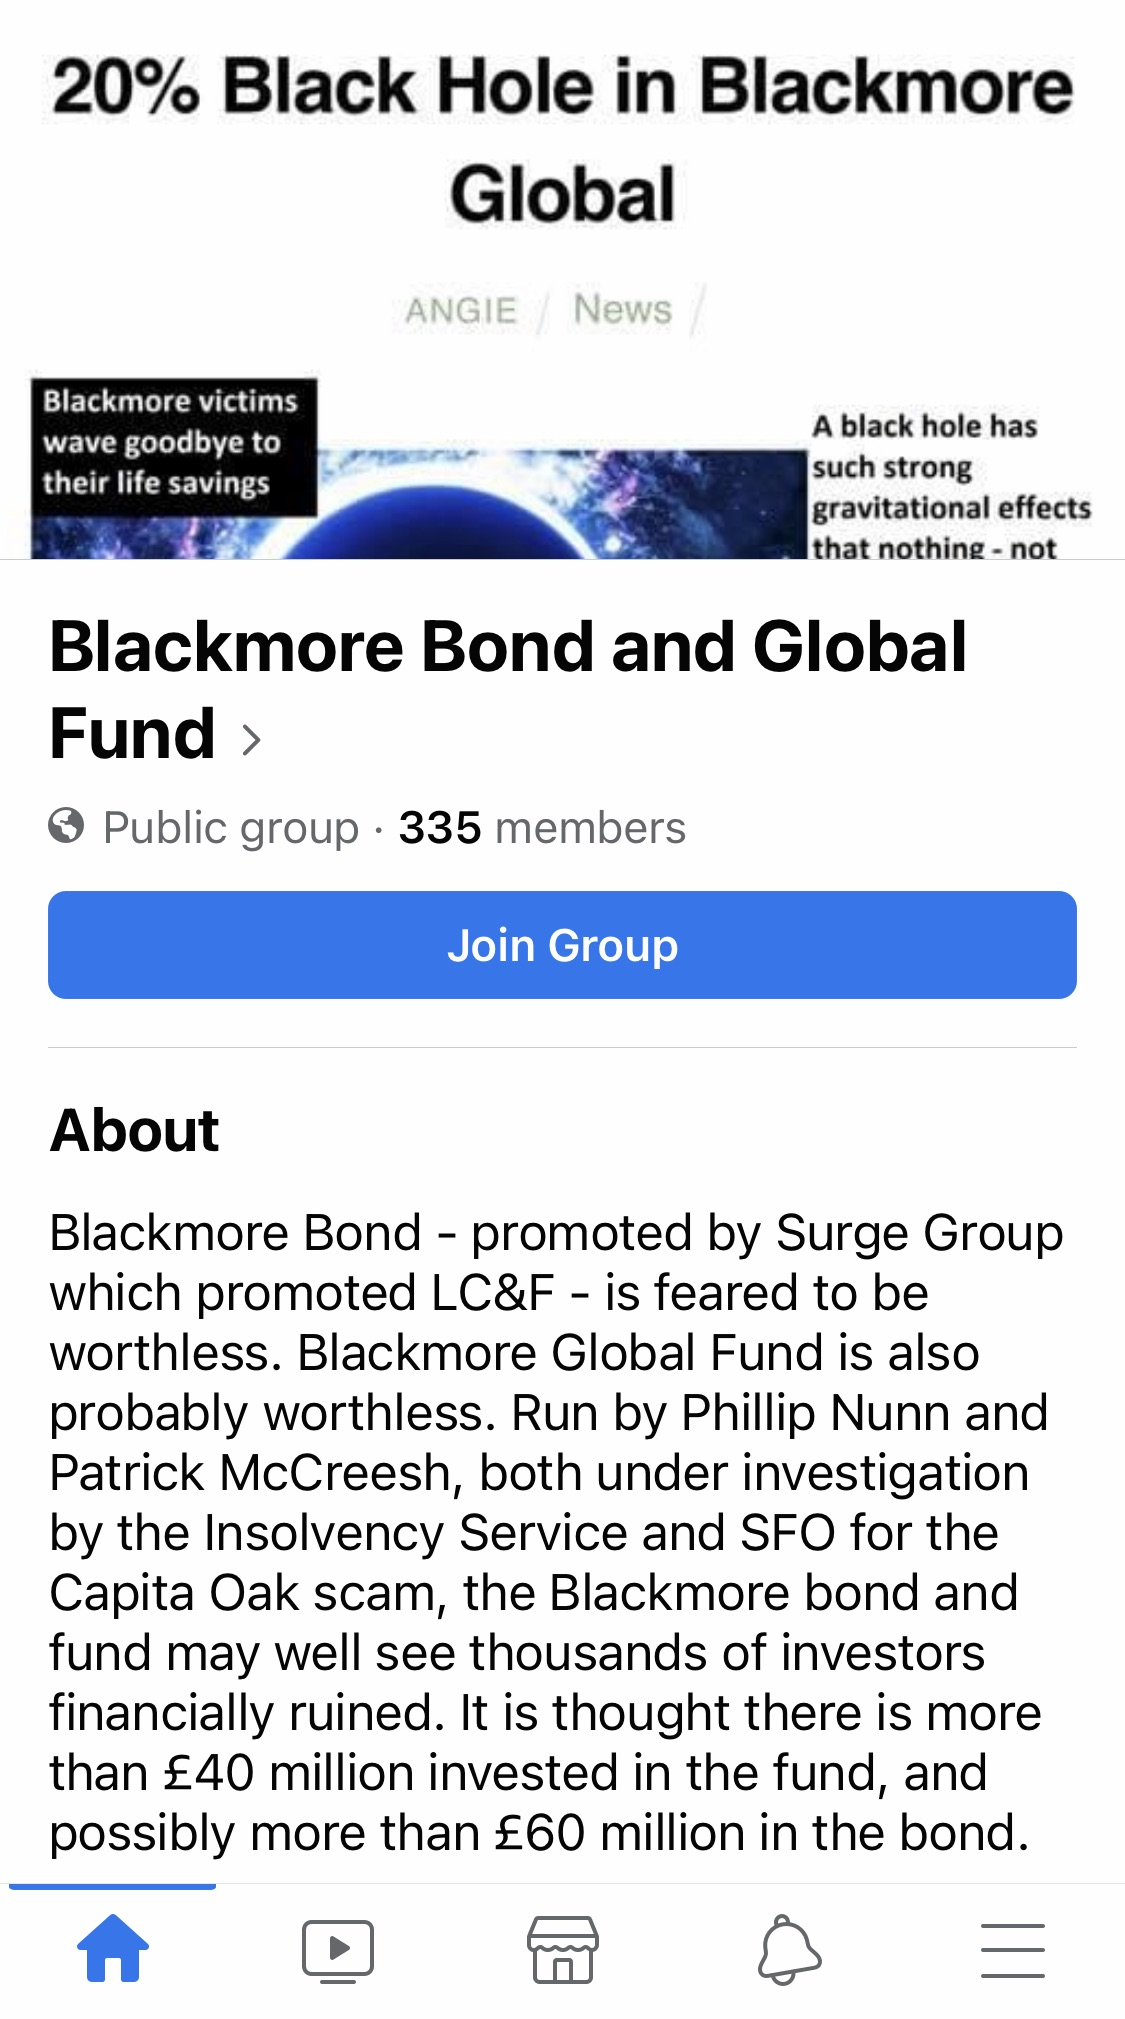 Angie Brooks' Blackmore Bond and Global Fund Facebook Group